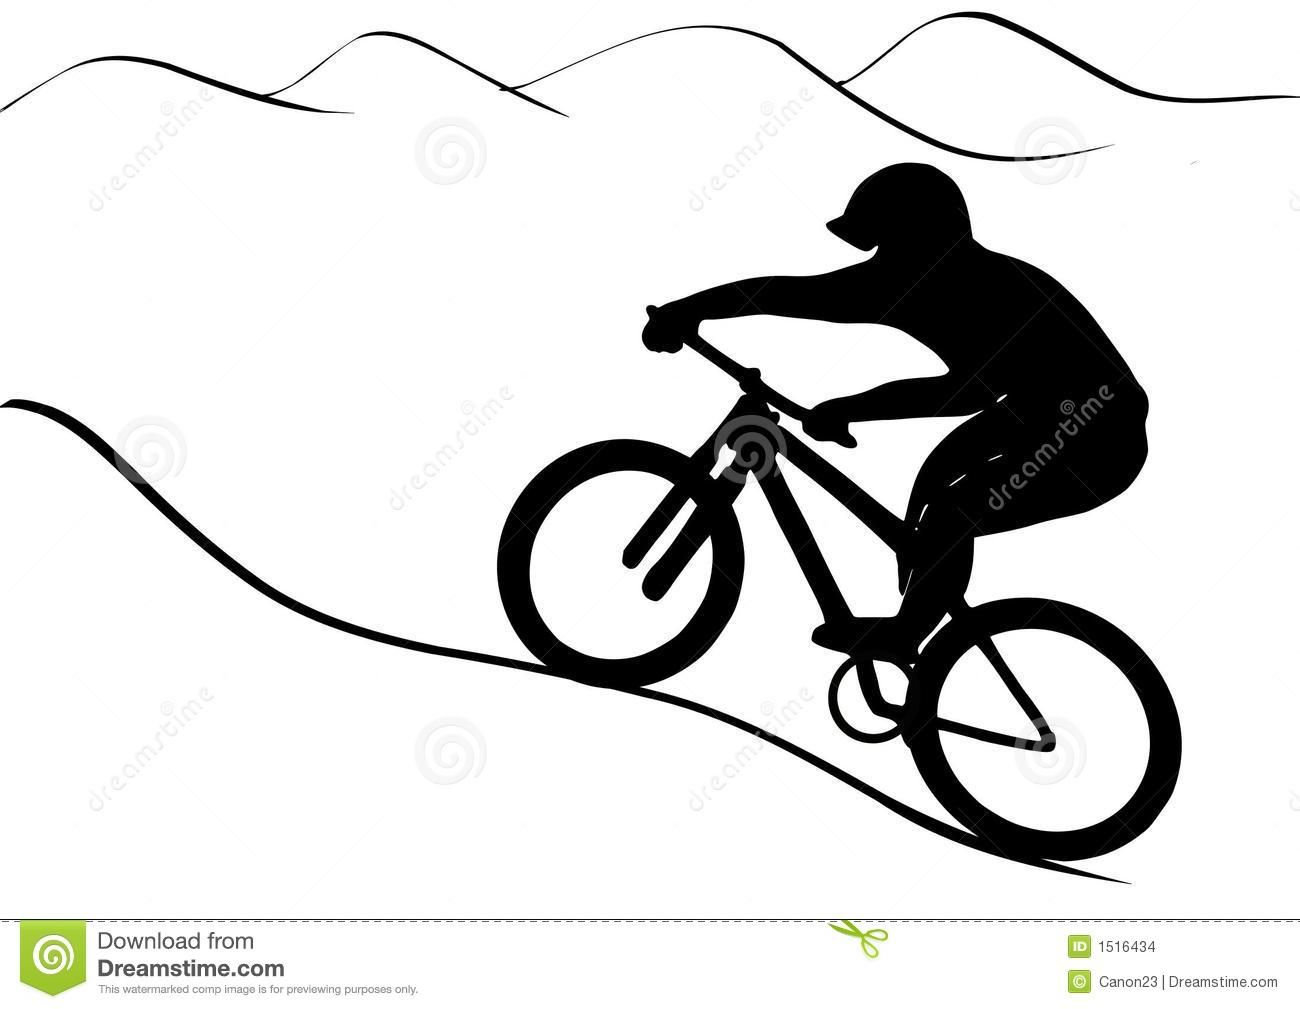 Image result for downhill mountain bike clip art.